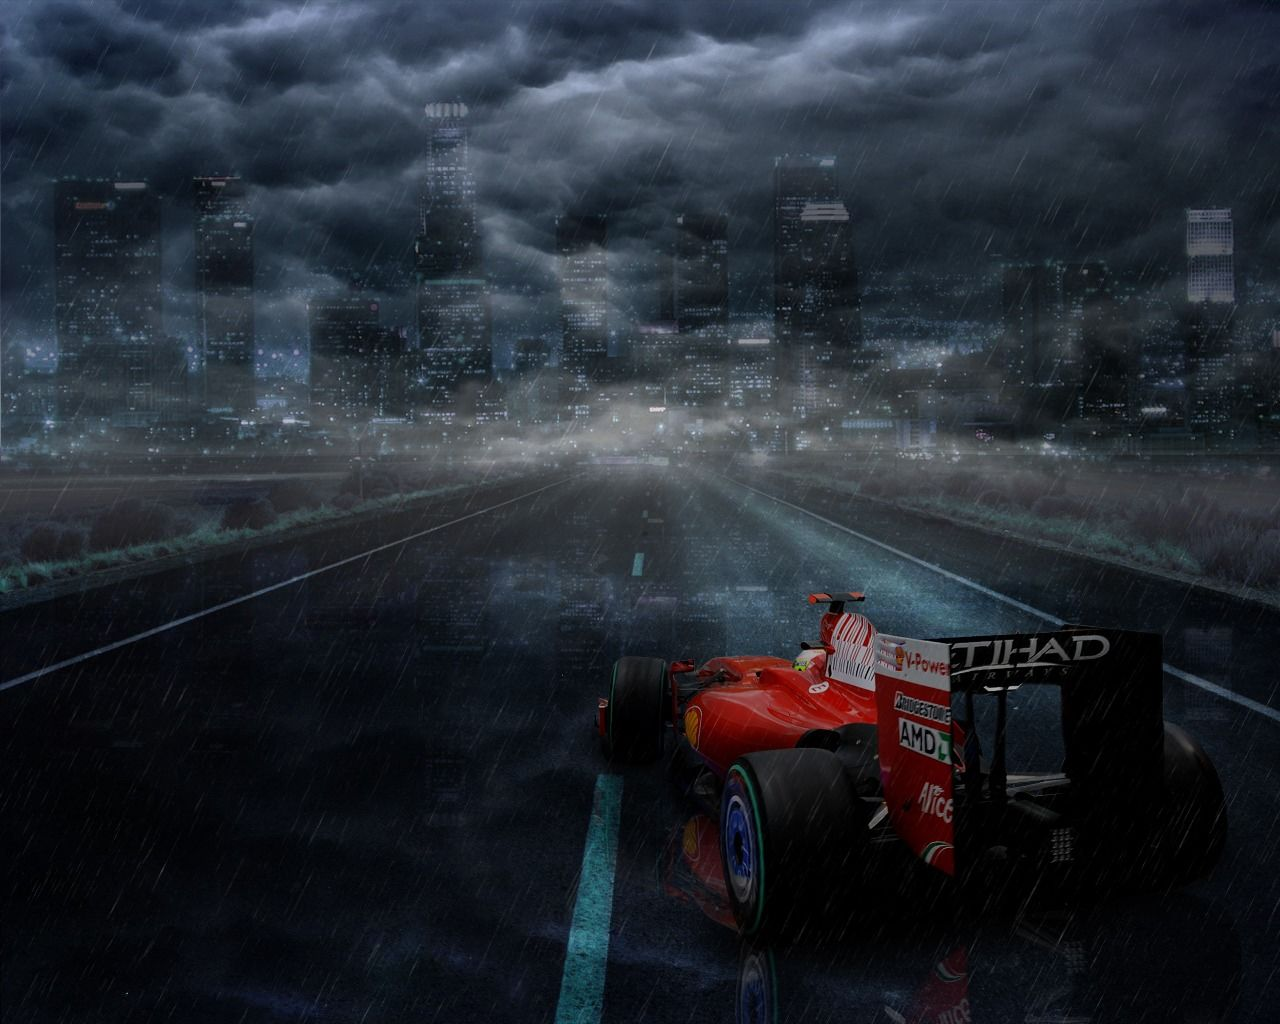 F1 Rain Formula 1 Wallpaper Car Wallpapers Formula 1 Car